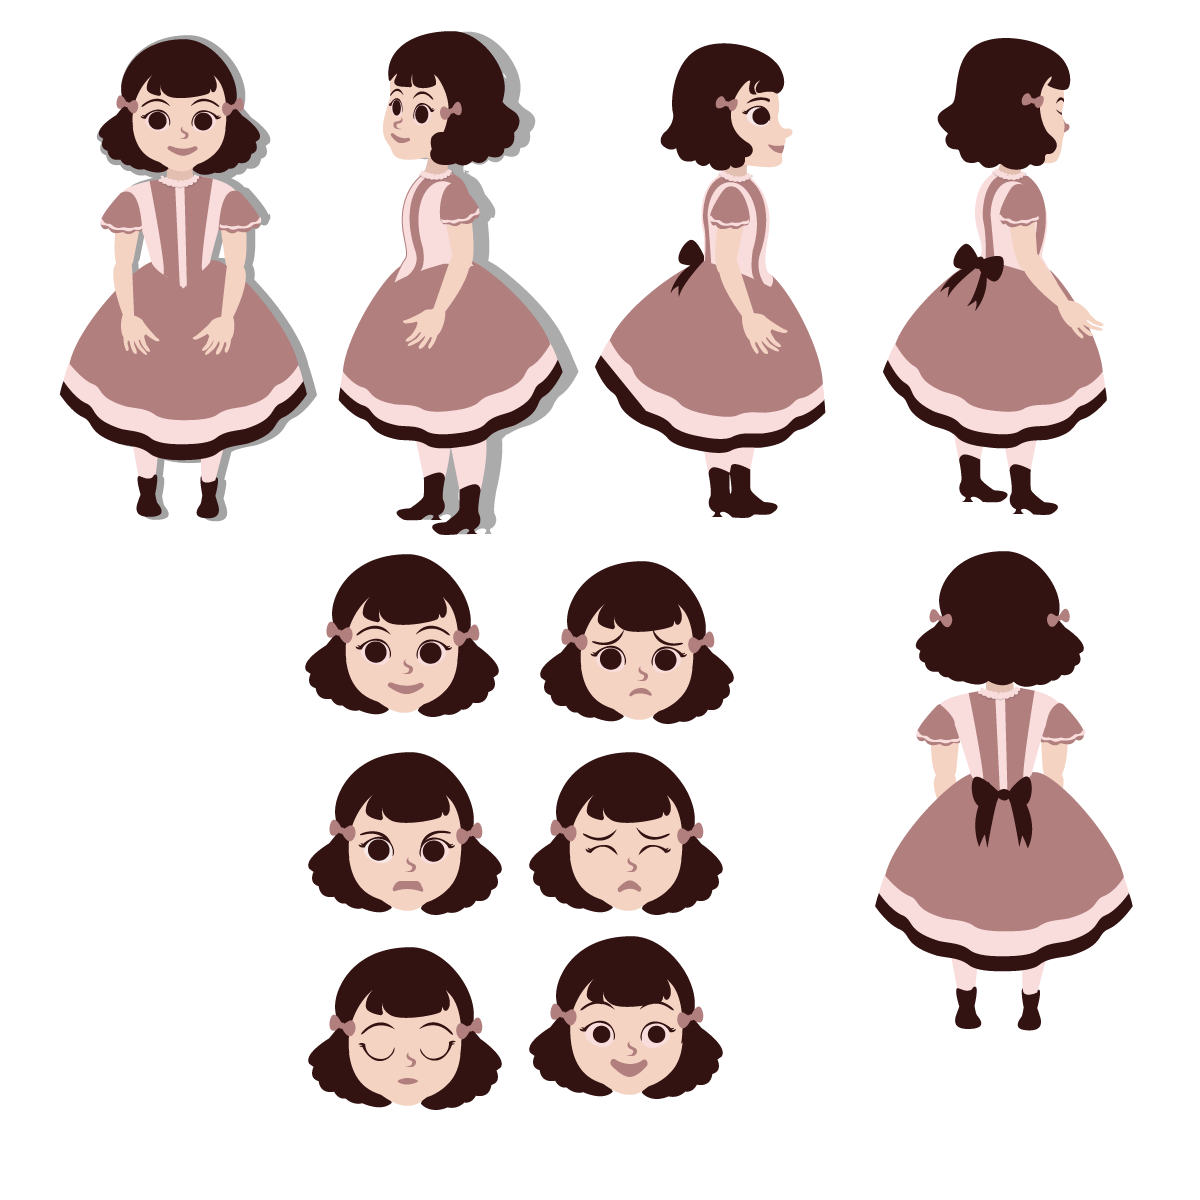 Alice-Turnaround-(1).png